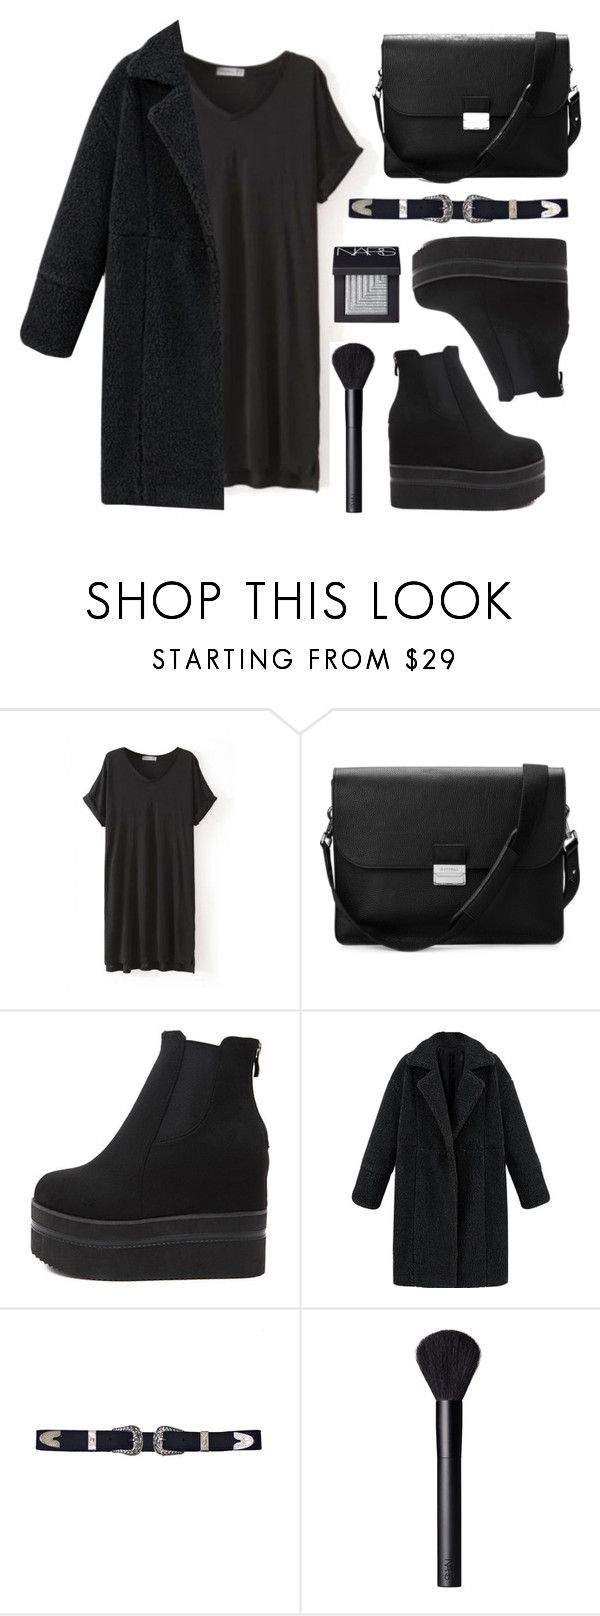 """""""Lady in Blk"""" by baludna ❤ liked on Polyvore featuring WithChic, Aspinal of London and NARS Cosmetics"""